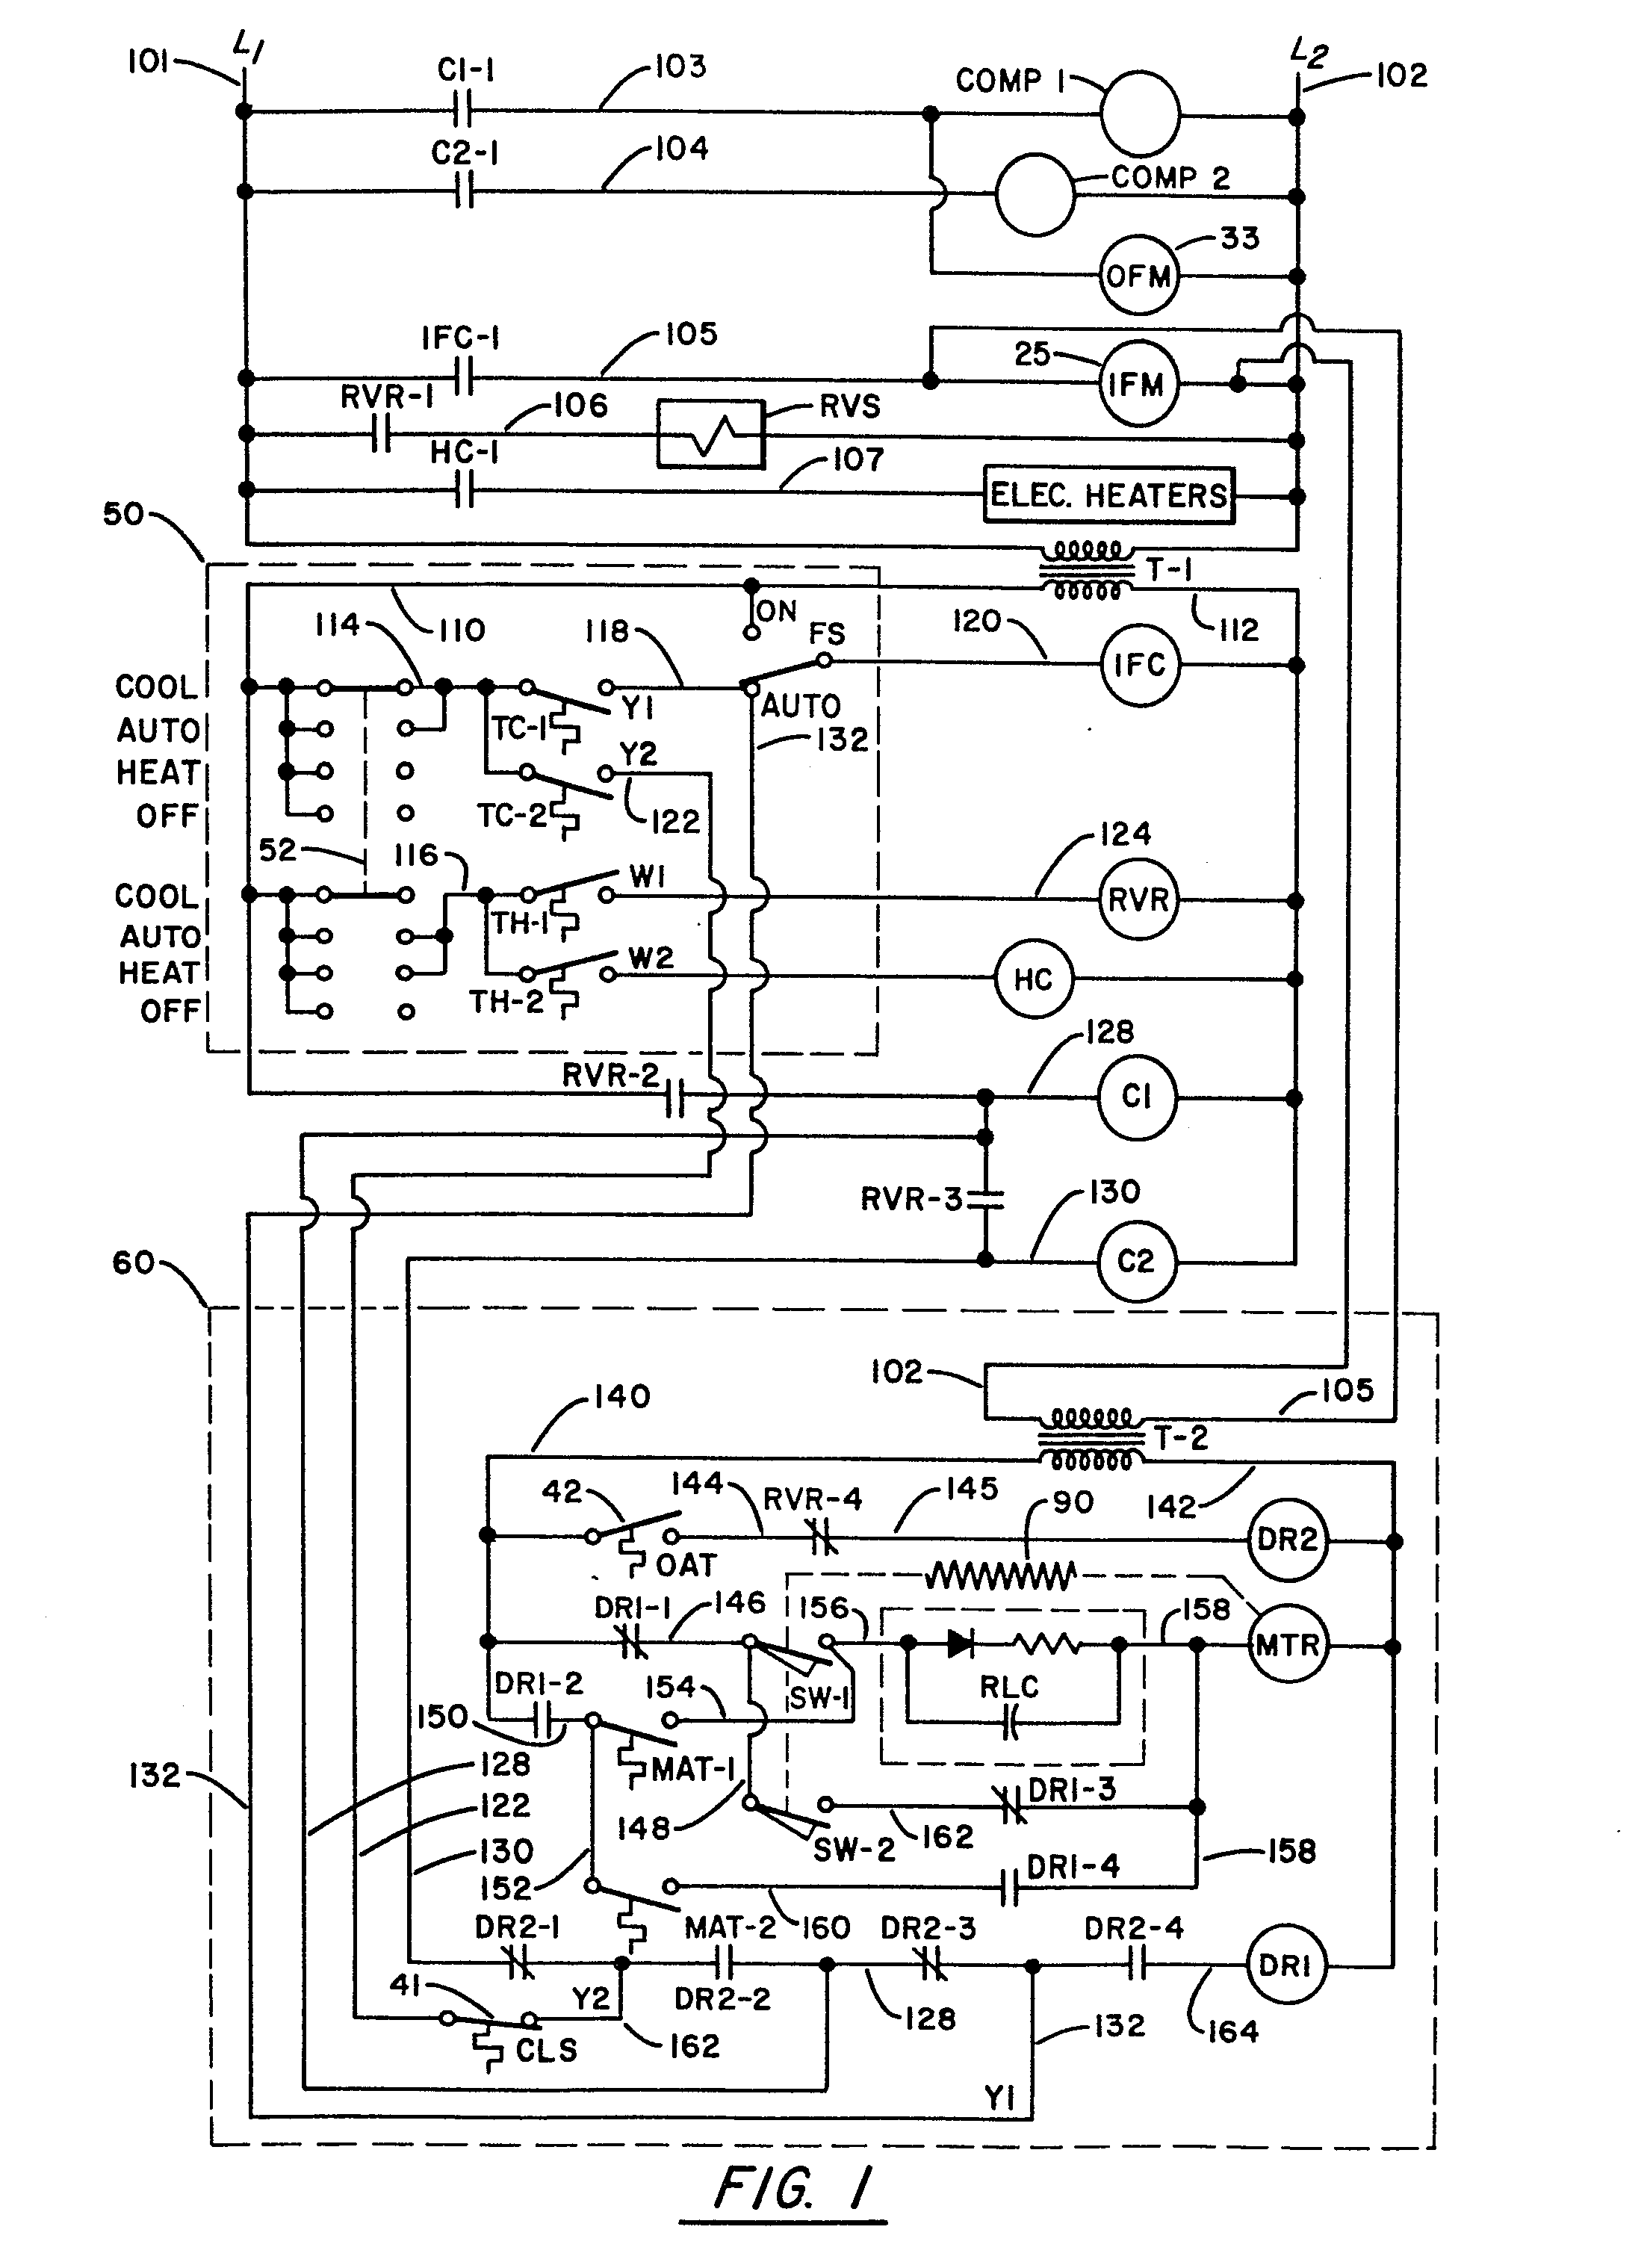 Trane Xr90 Wiring Diagram